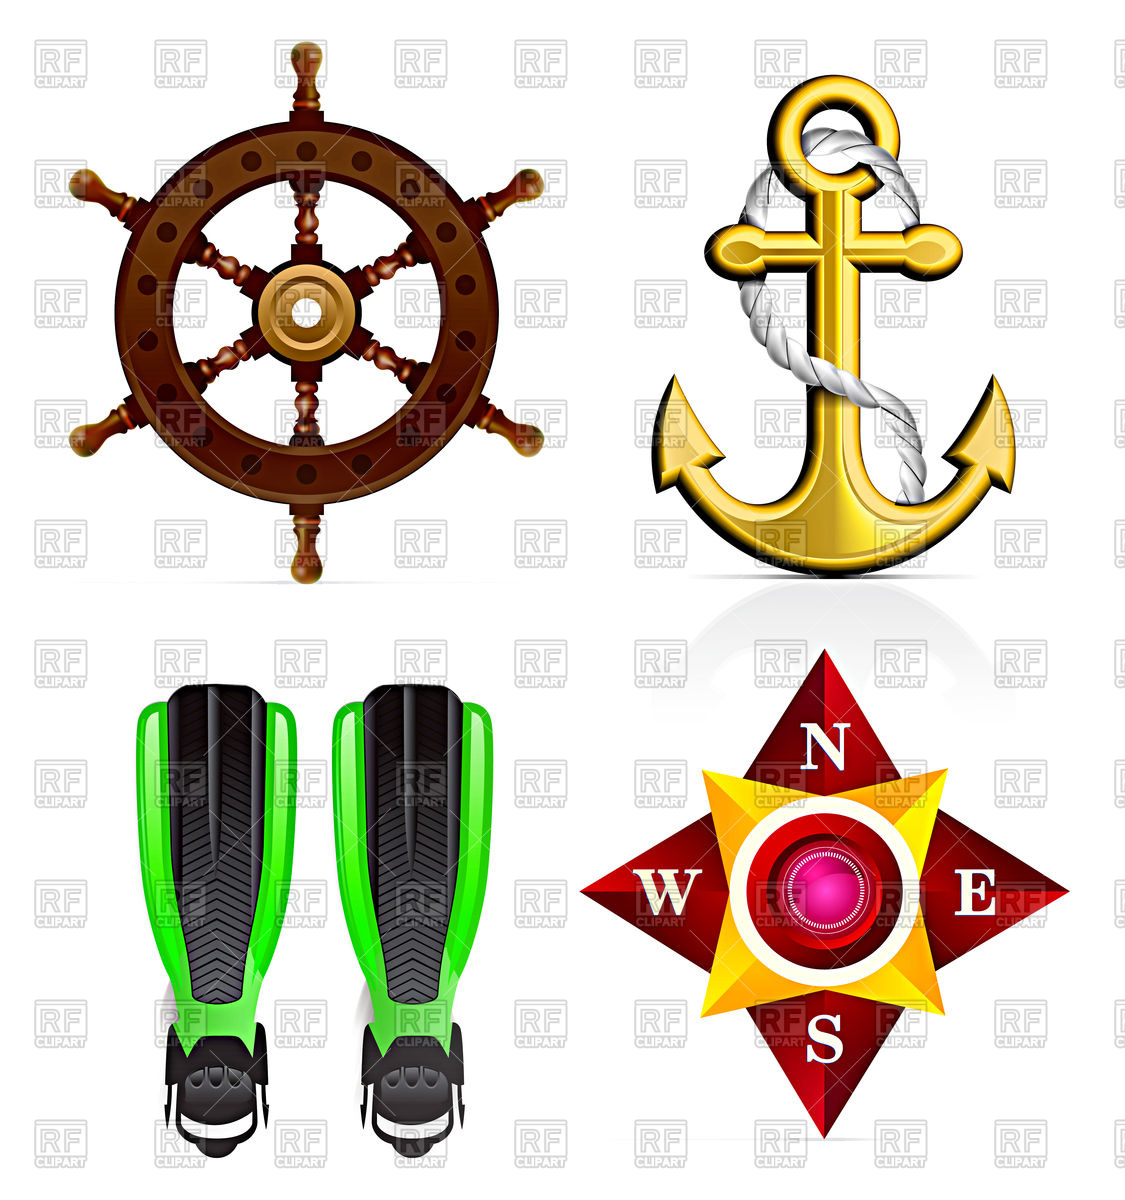 marine clipart at getdrawings com free for personal use marine rh getdrawings com marina clip art images marine clipart black and white